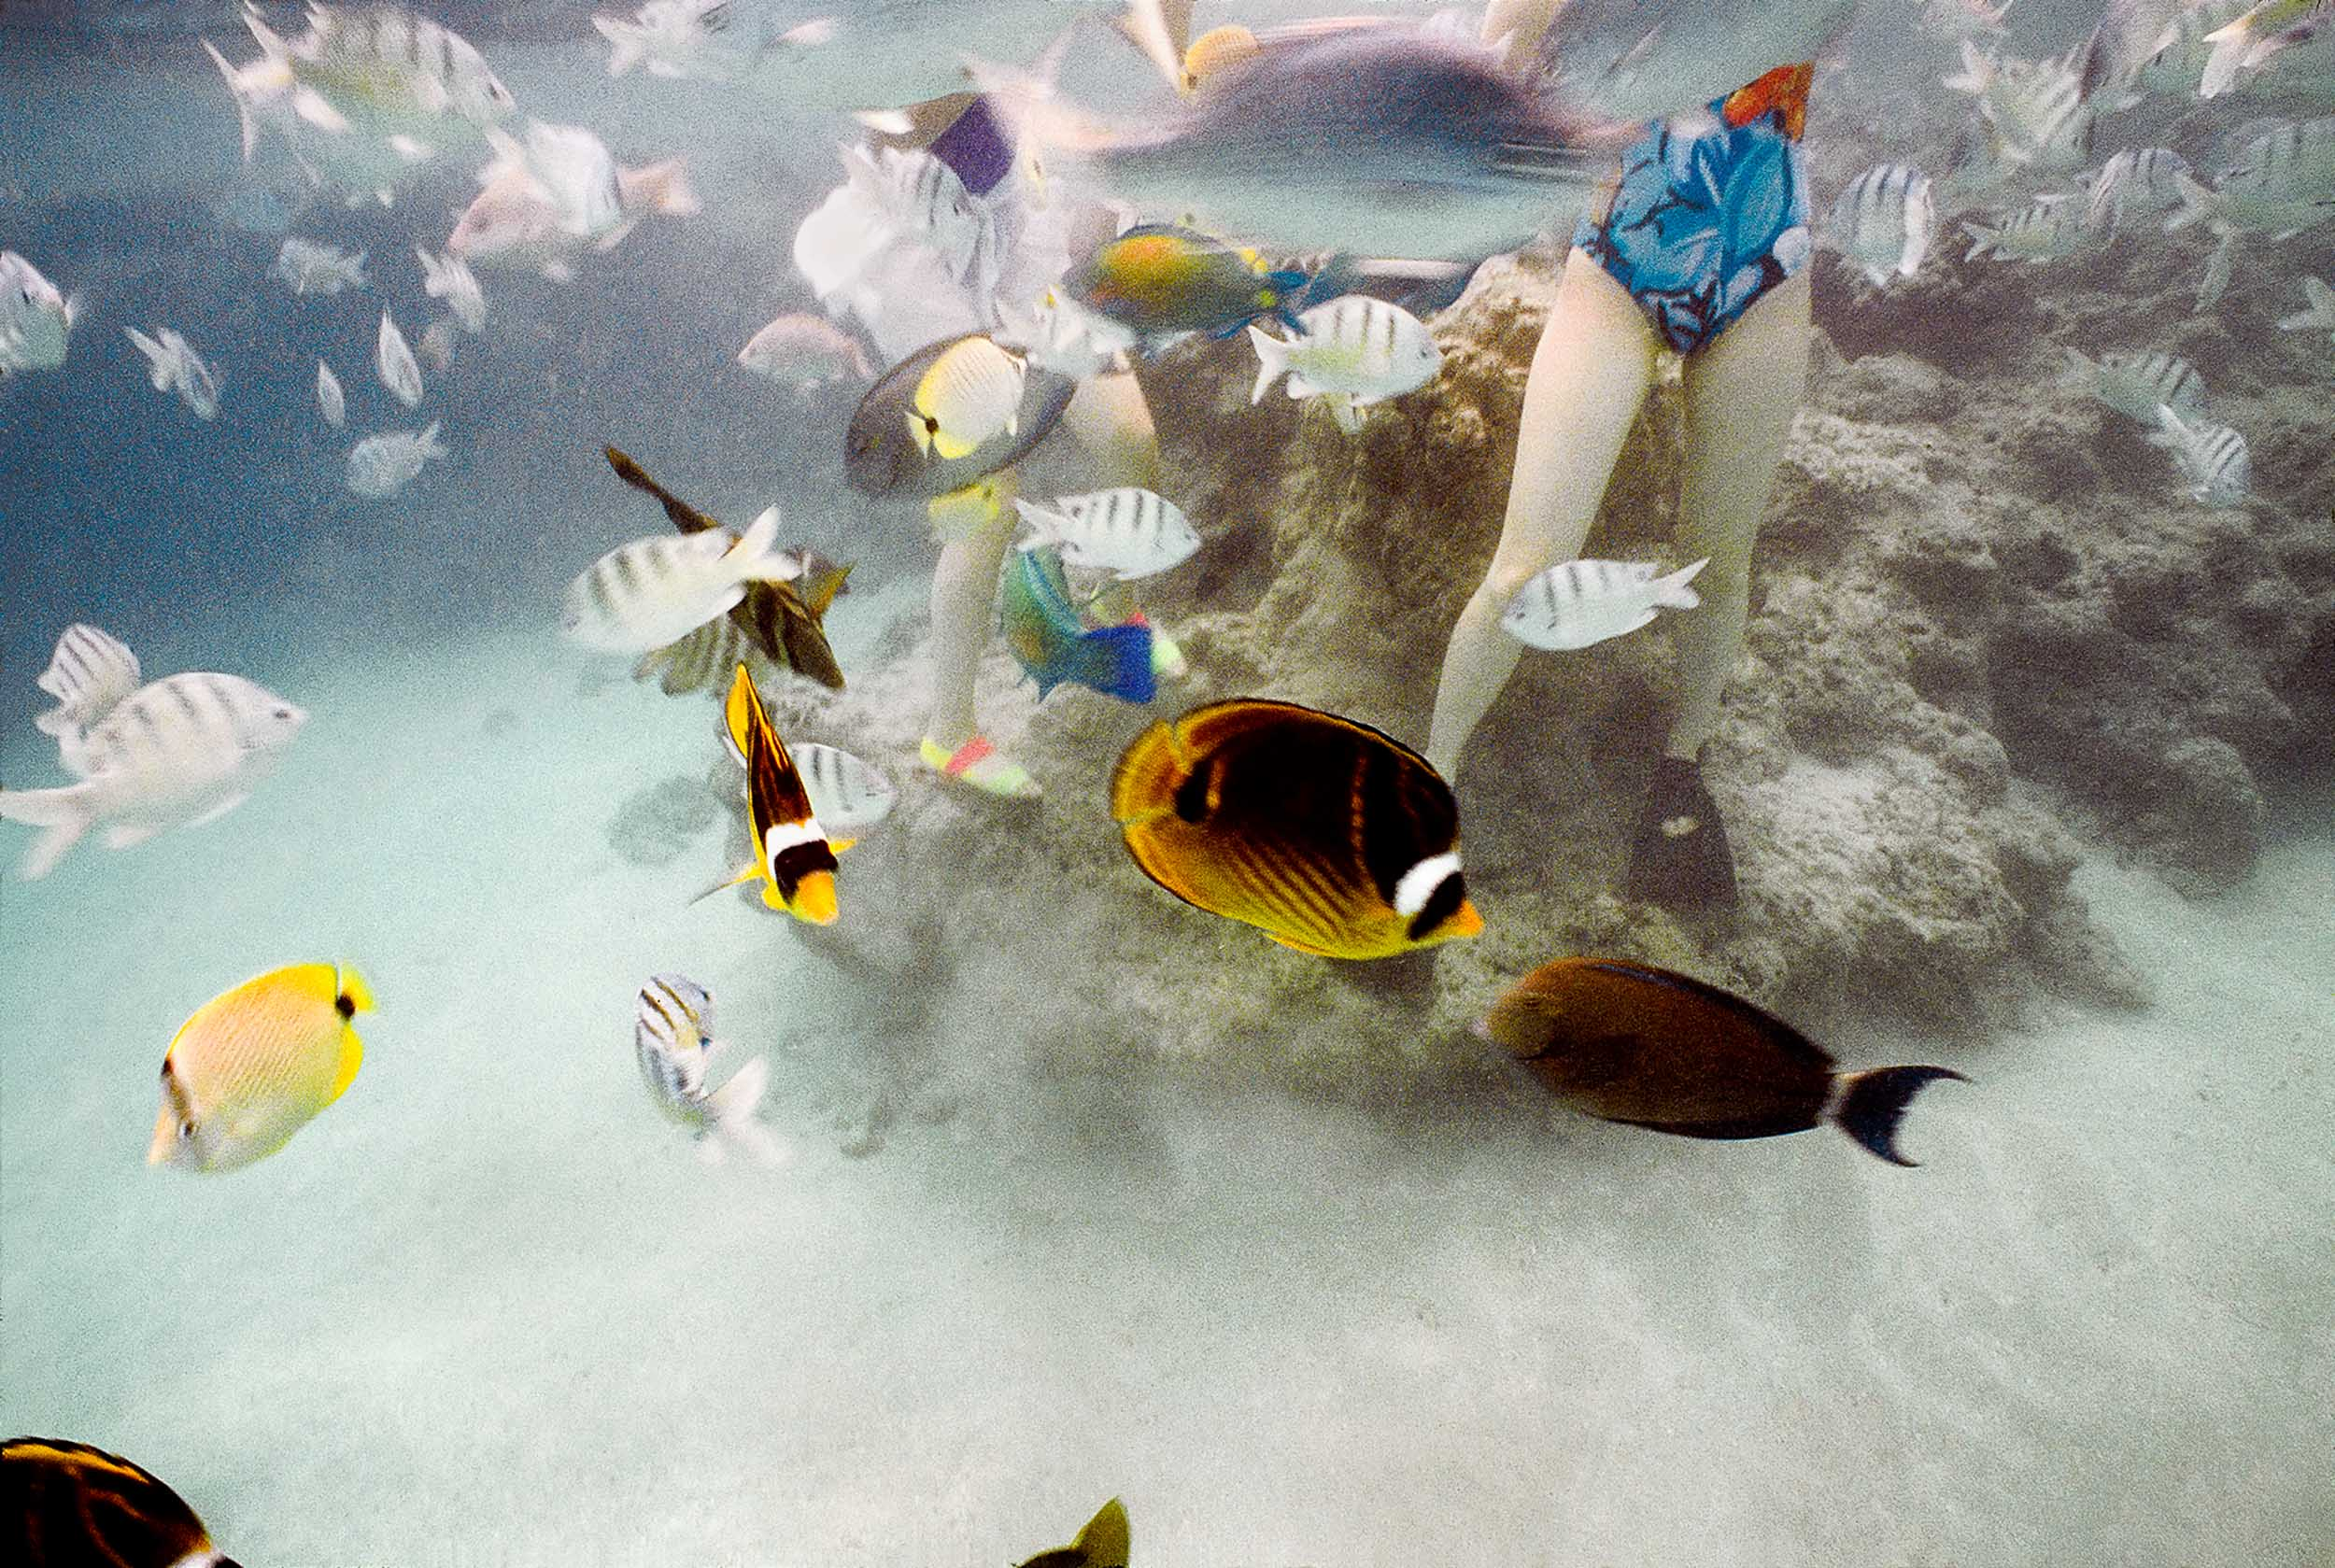 Barbara Alper- Photo of fish swimming around people at Hanauma Bay, Oahu Hawaii